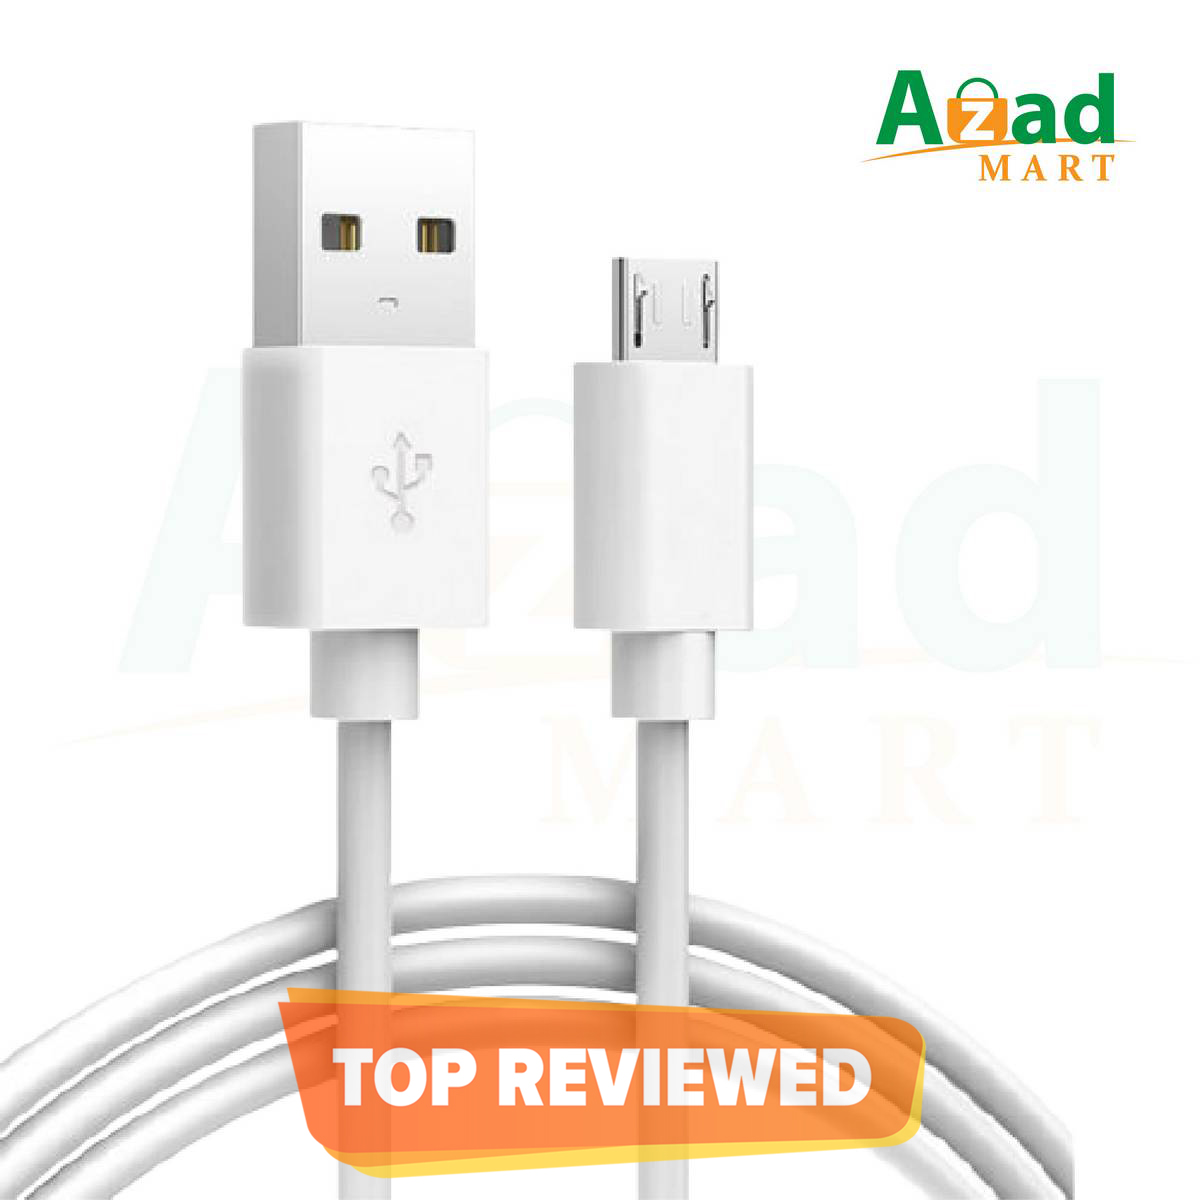 Micro USB Fast Charging Data Cable 2.0 1 Meter | 100% Genuine High Speed USB Cable Compatible with all Android Devices.